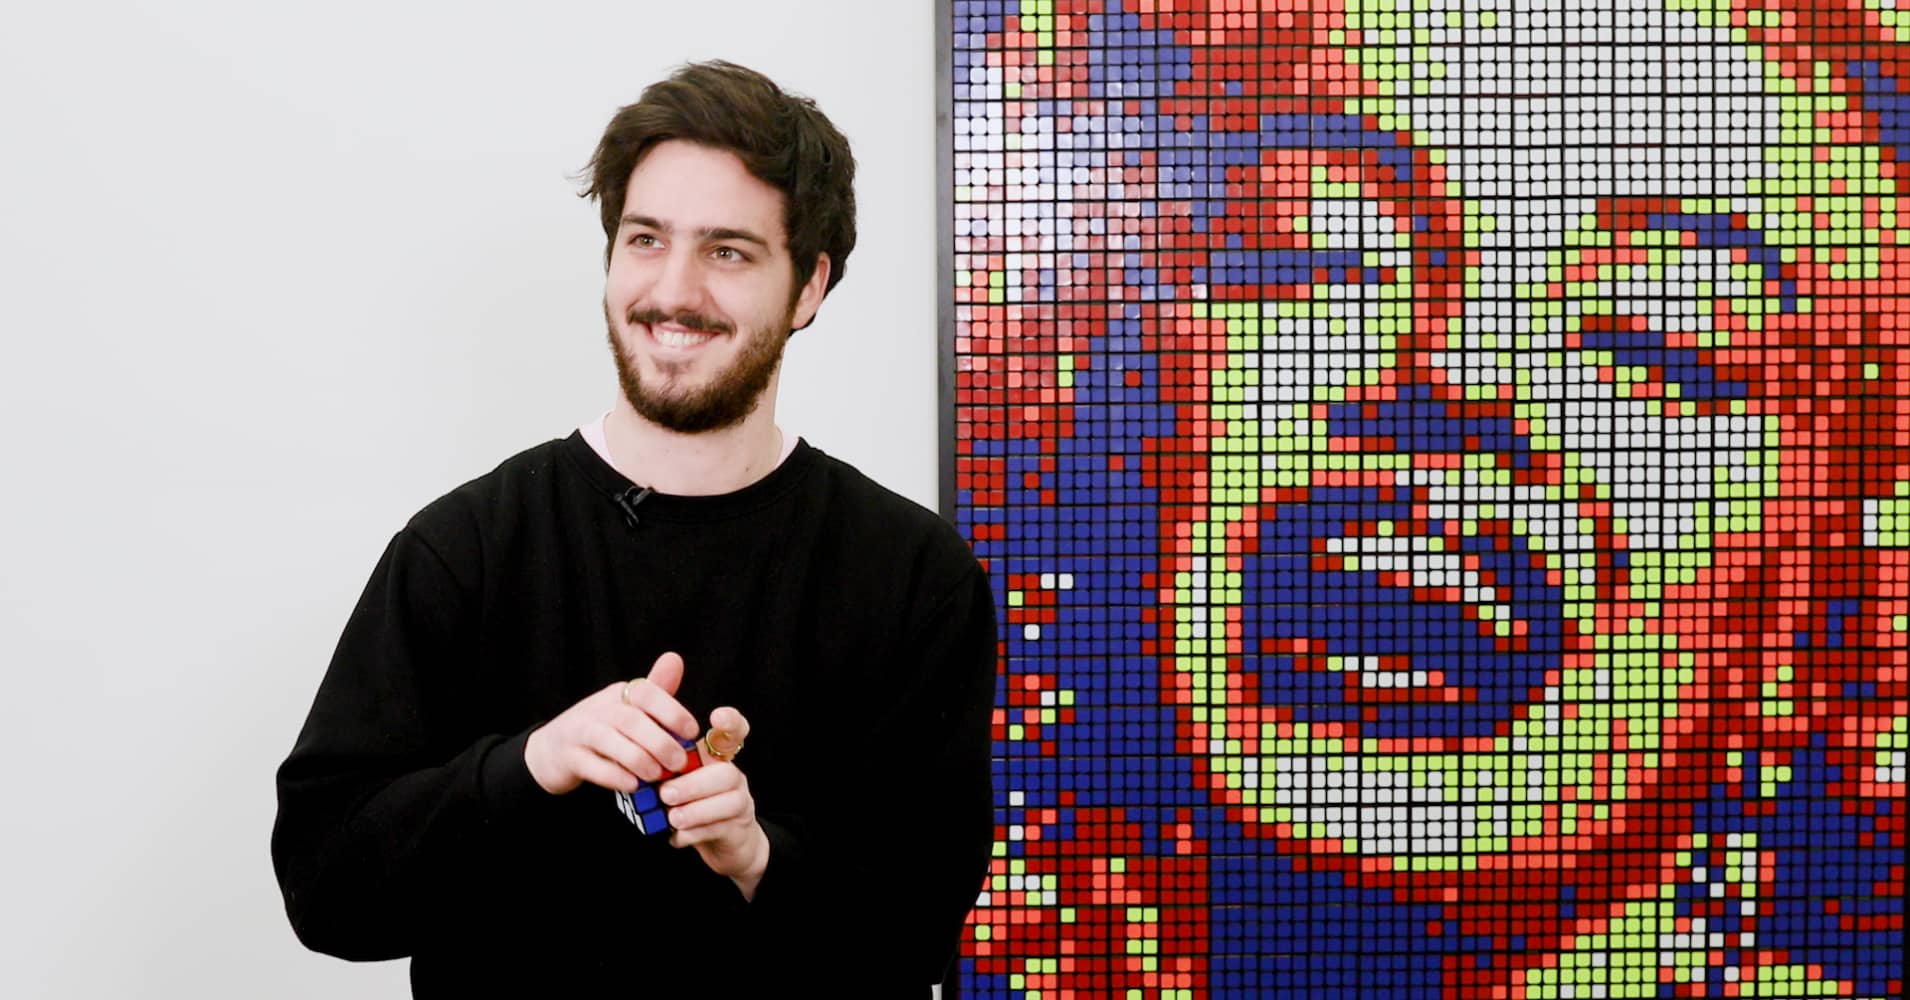 This 24-year-old makes celeb portraits from Rubik's Cubes and sells them for thousands of dollars